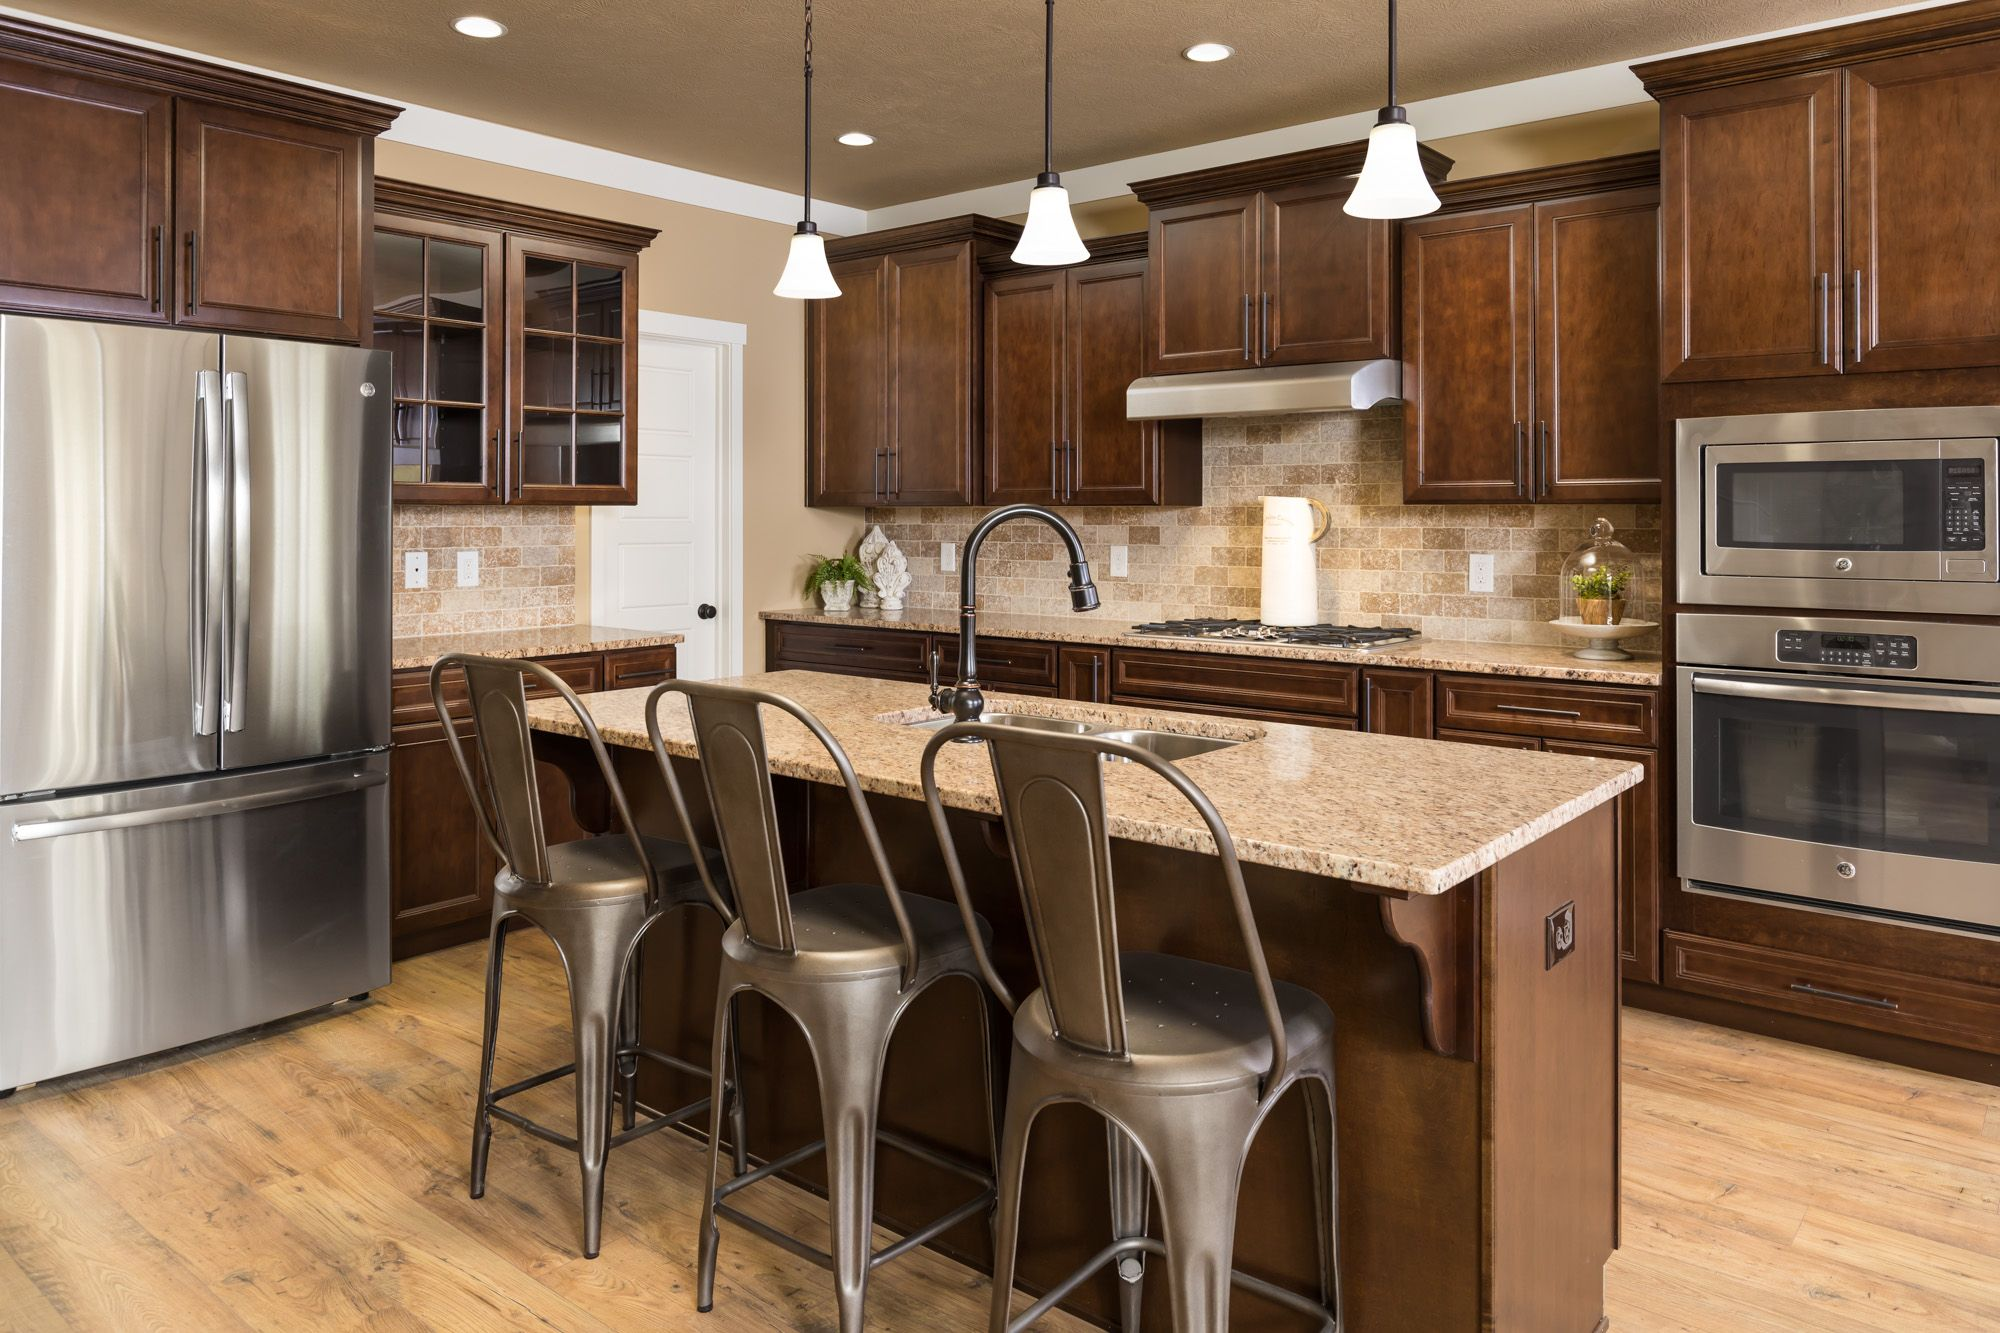 Kitchen featured in the Traditions 2900 V8.2b By Allen Edwin Homes in Ann Arbor, MI